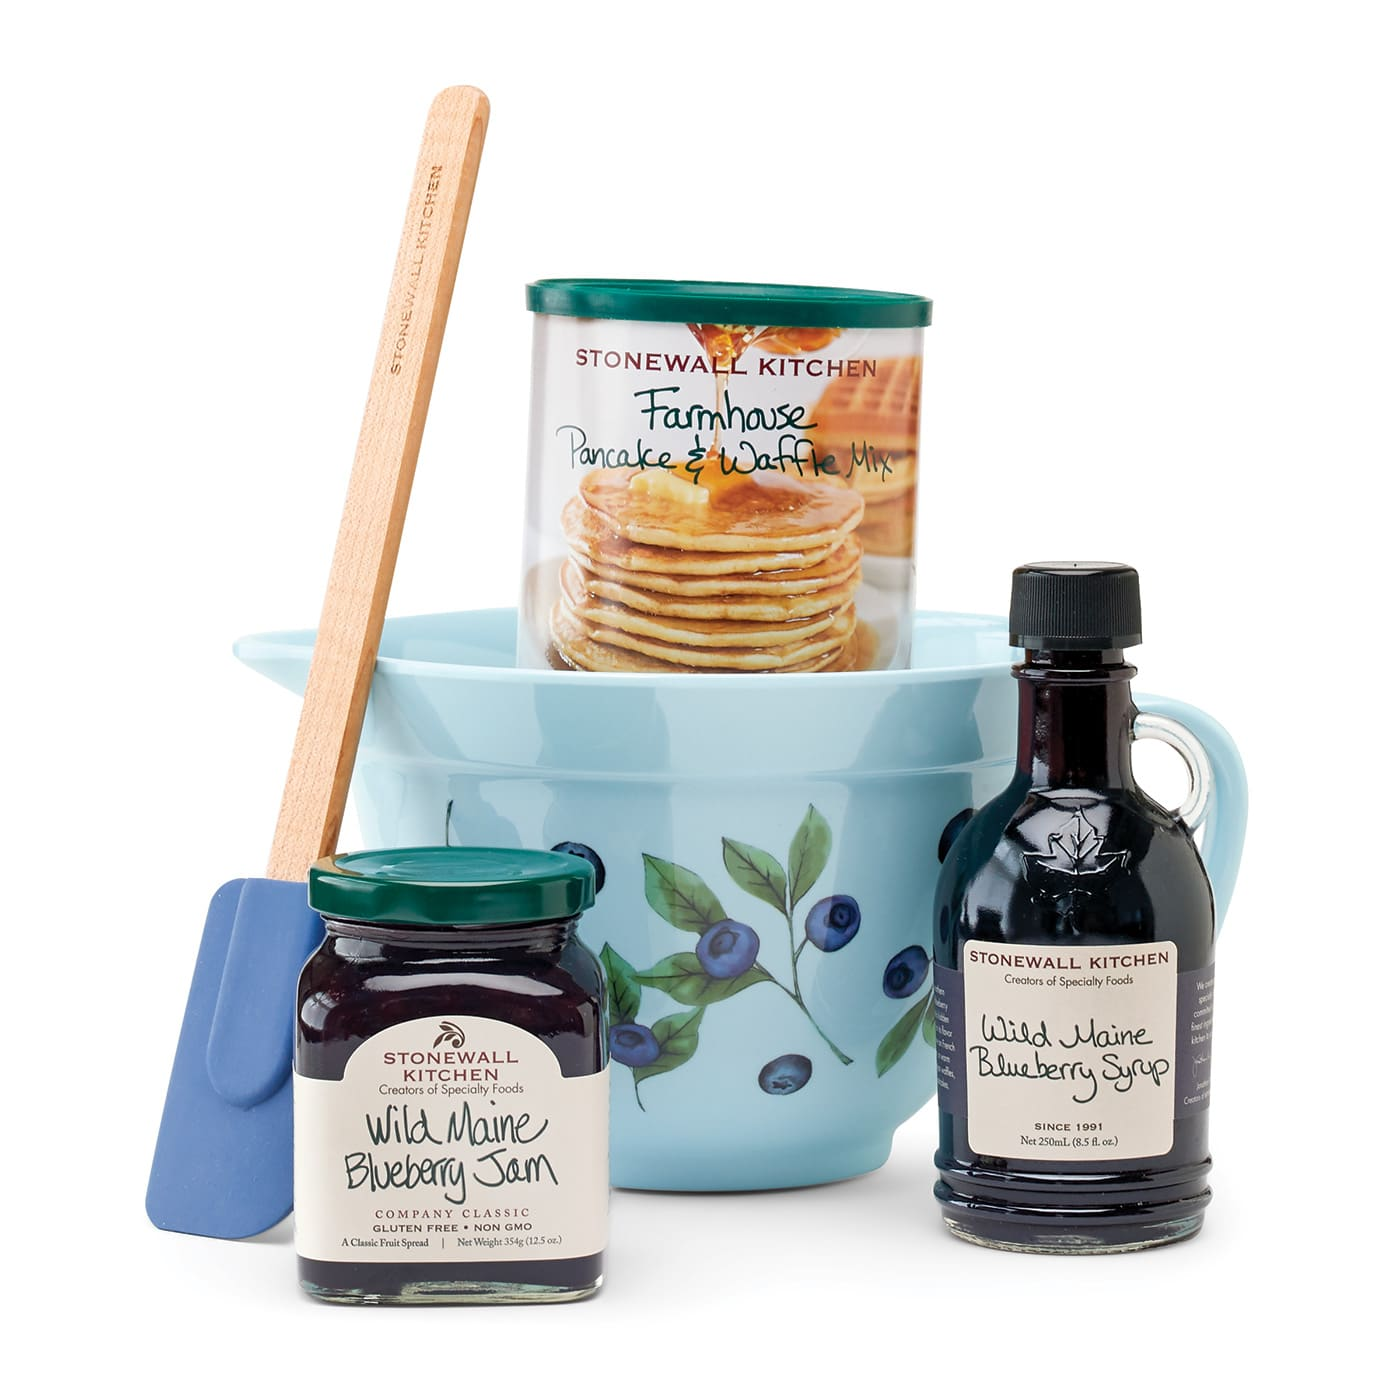 gift guide Archives - Percolate Kitchen